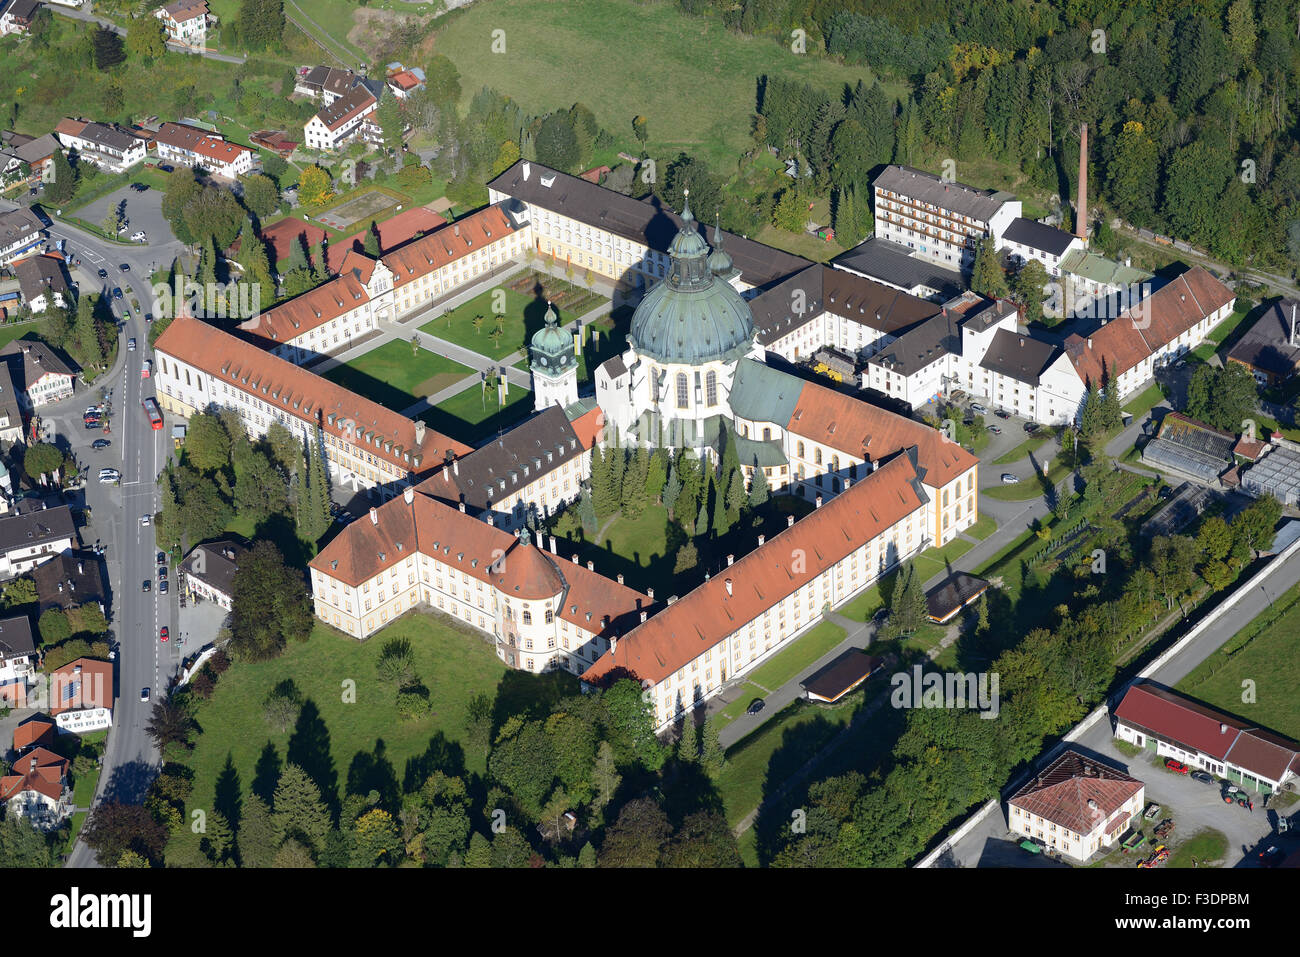 ETTAL ABBEY (aerial view). Benedictine monastery in the village of Ettal, Bavaria, Germany. - Stock Image